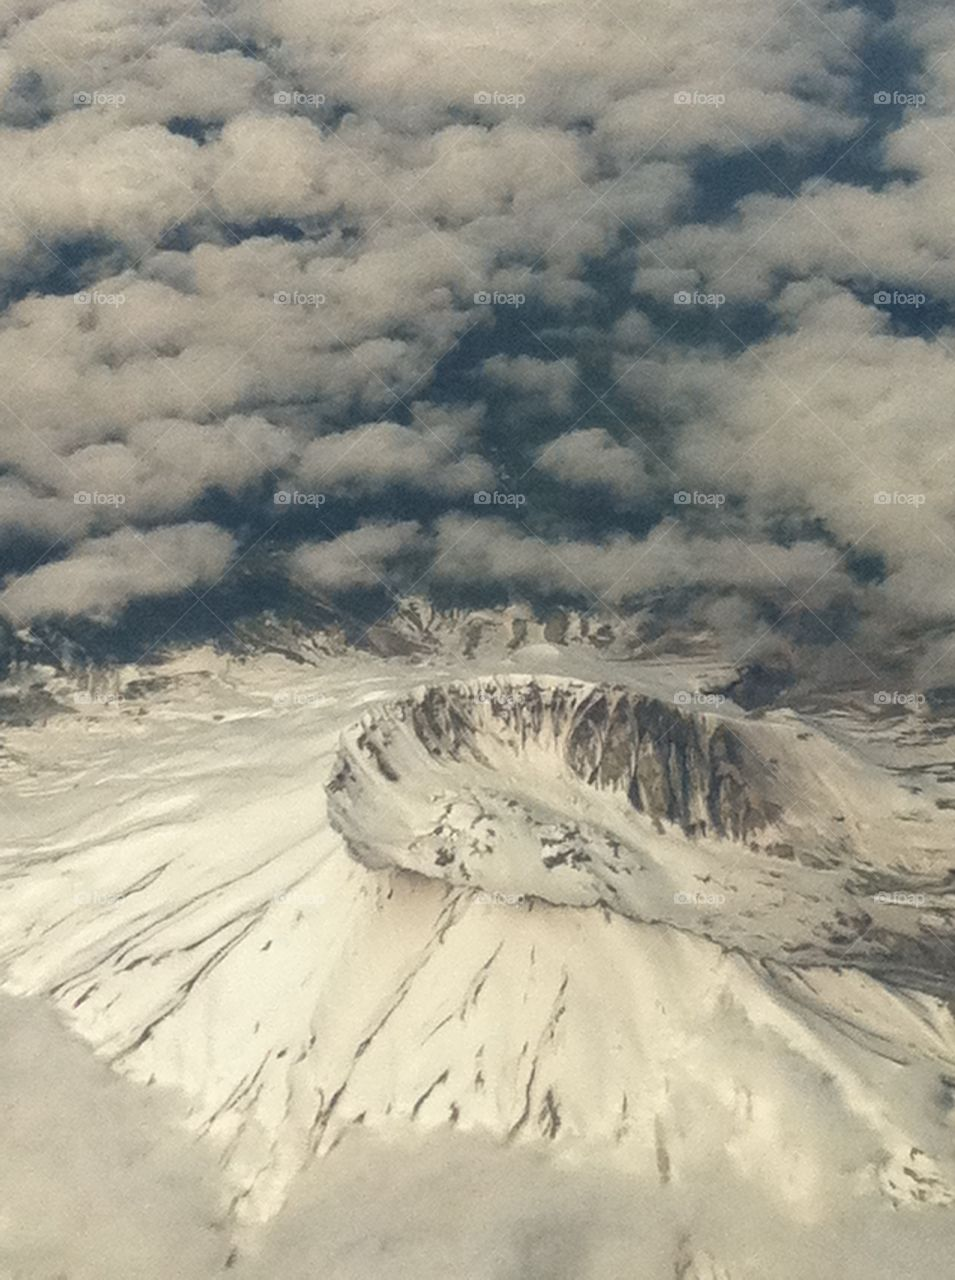 An arial view of Mount Saint Helens's dormant volcanic, snow covered crater. The view looking out from my window seat while on a flight to Vegas